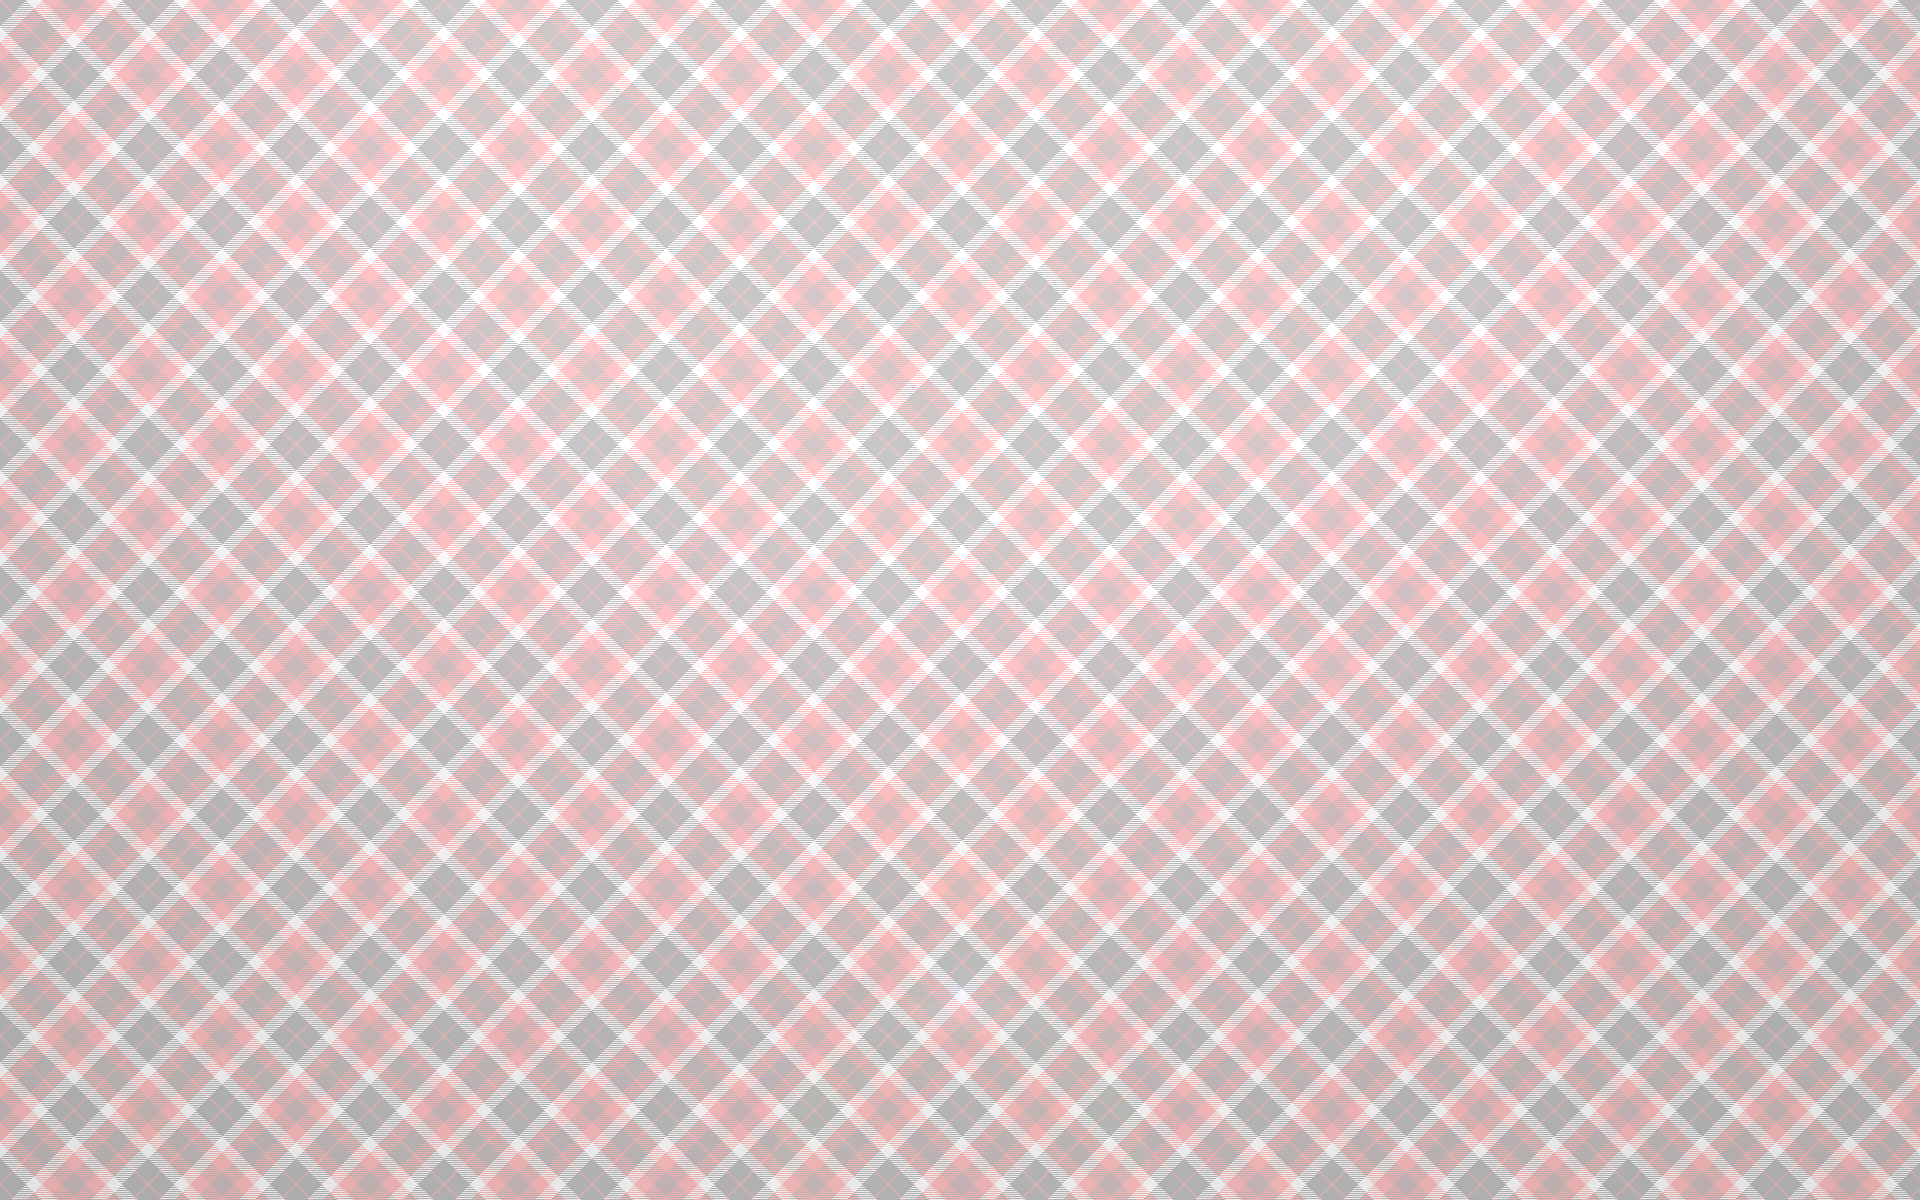 Pattern wallpaper pc computer 3438 wallpaper walldiskpaper for Wallpaper pattern